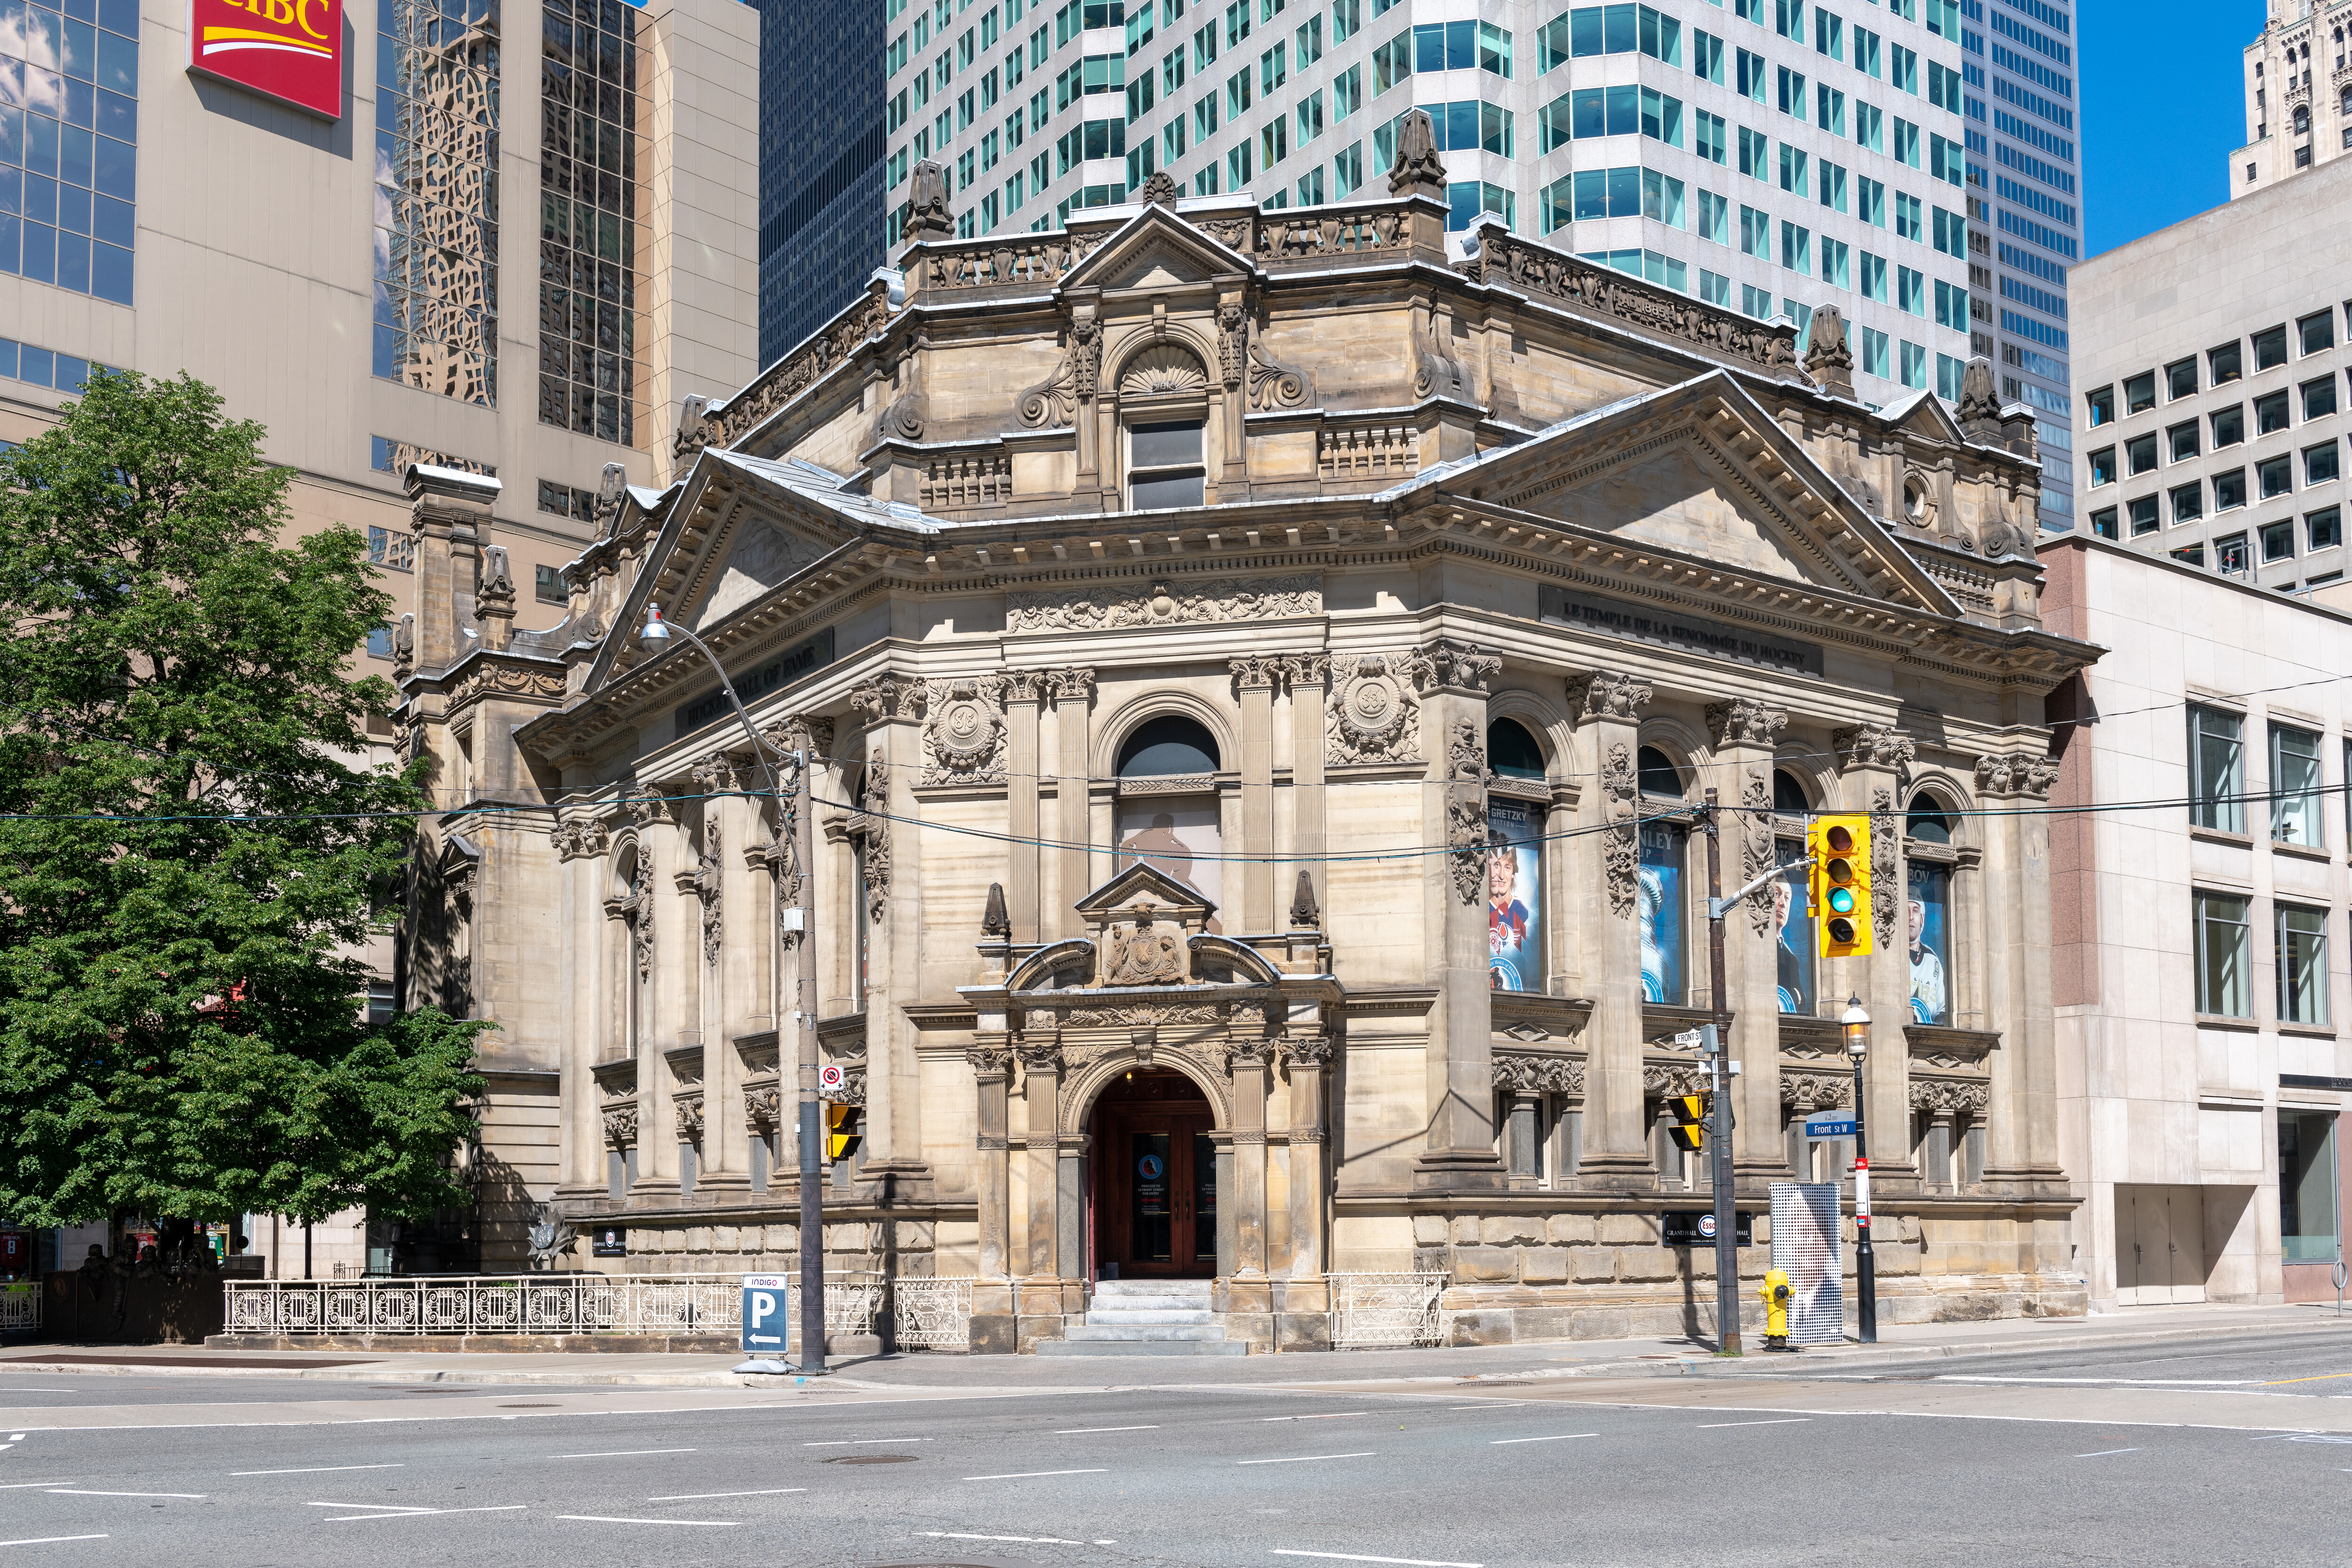 The Hockey Hall of Fame building which is part of the city...